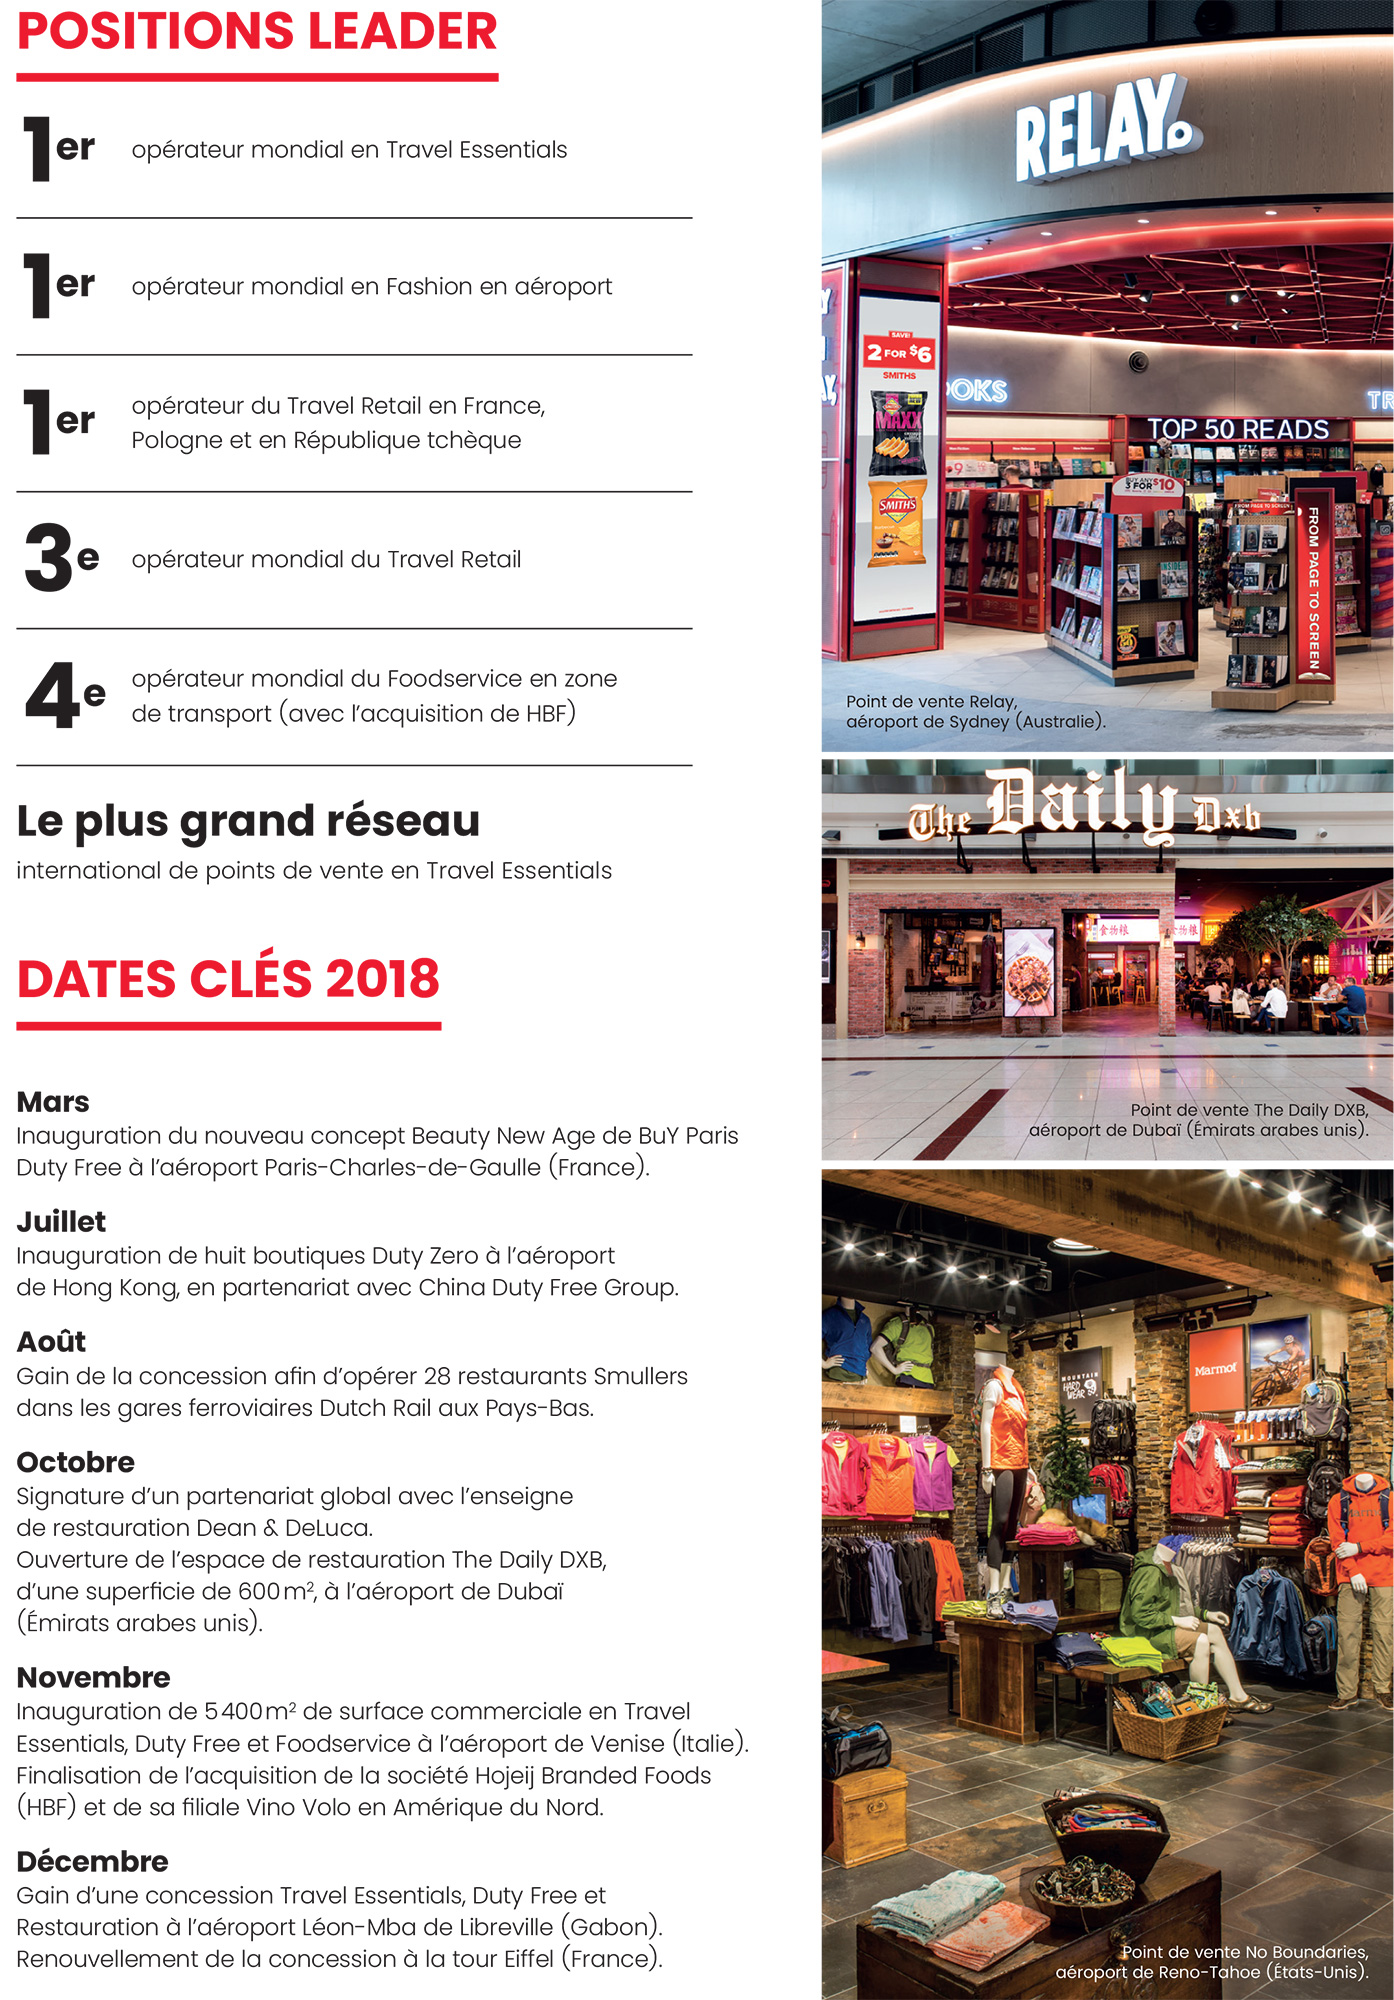 Lagardère Travel Retail : positions leader et dates clés 2018